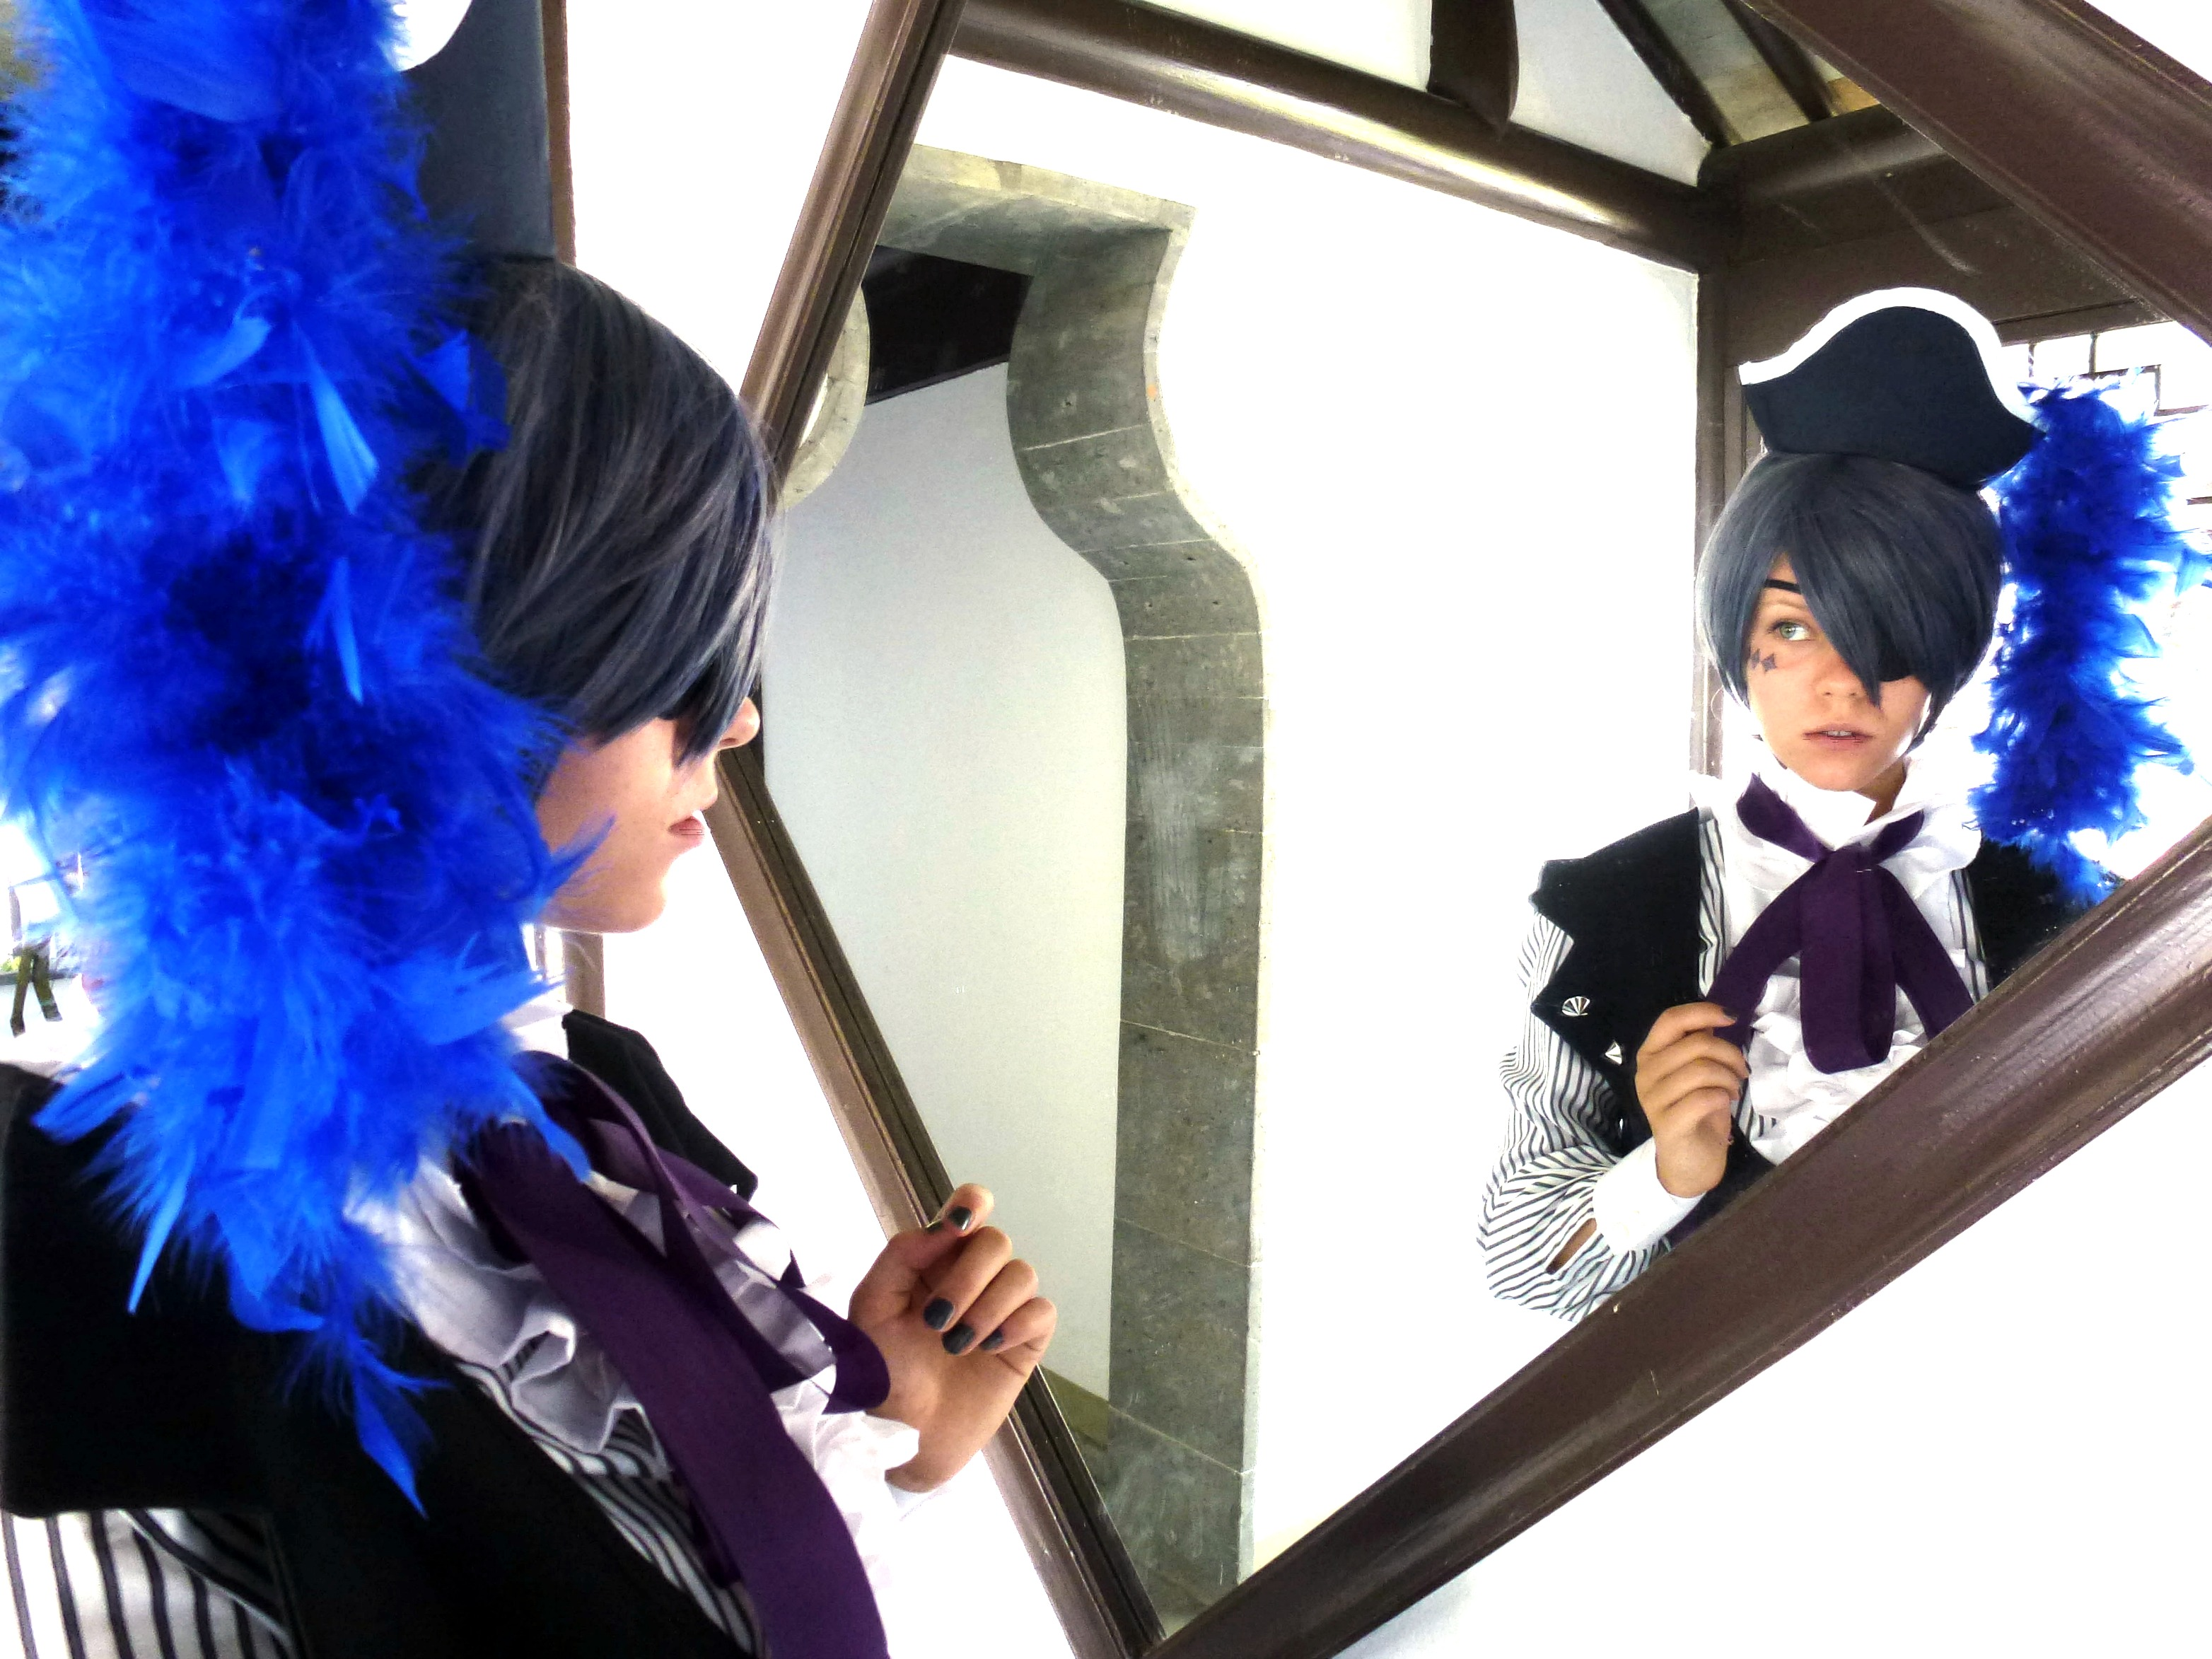 Ciel 'Smile' Phantomhive by HollySmiley